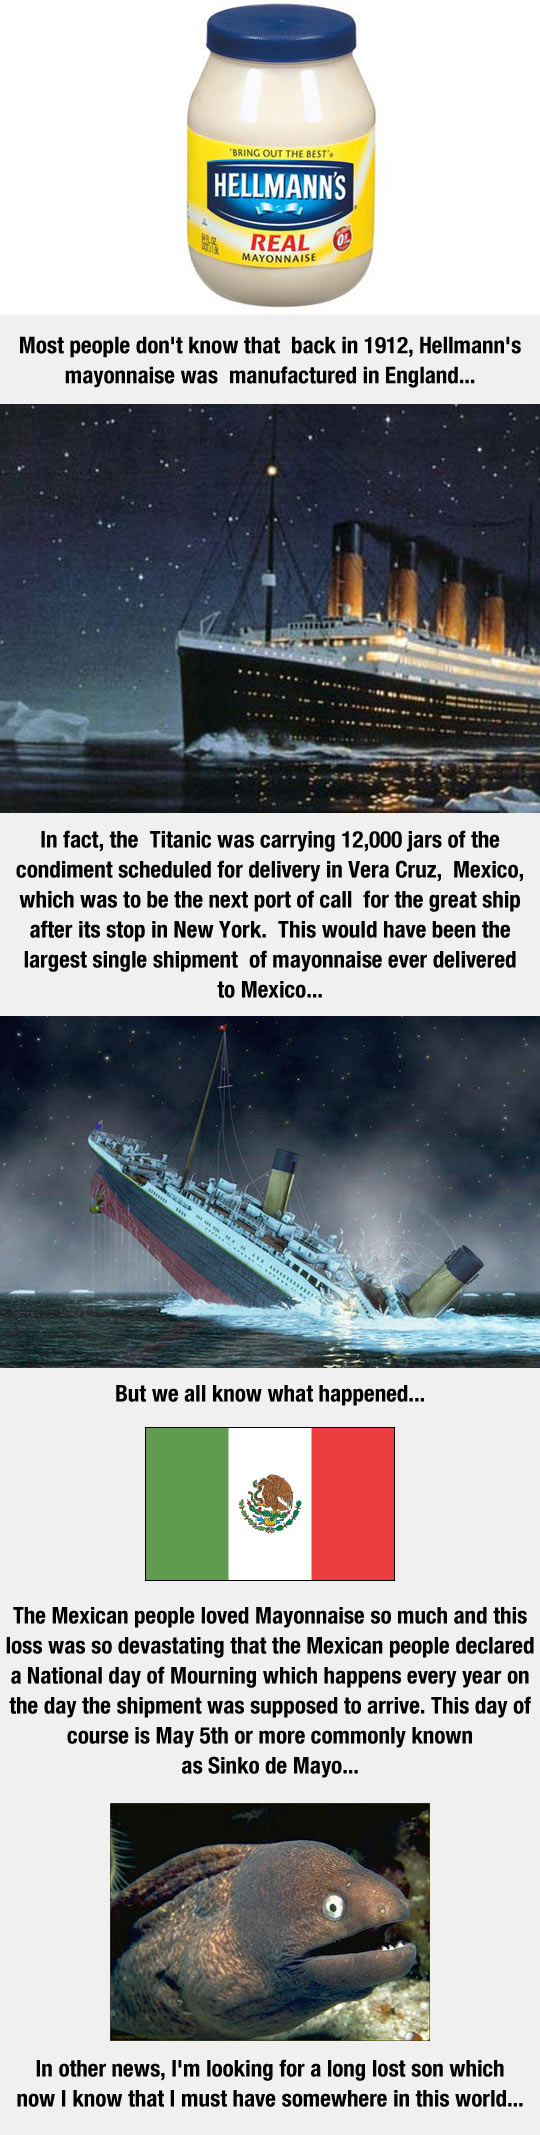 Something You Didn't Know About The Titanic